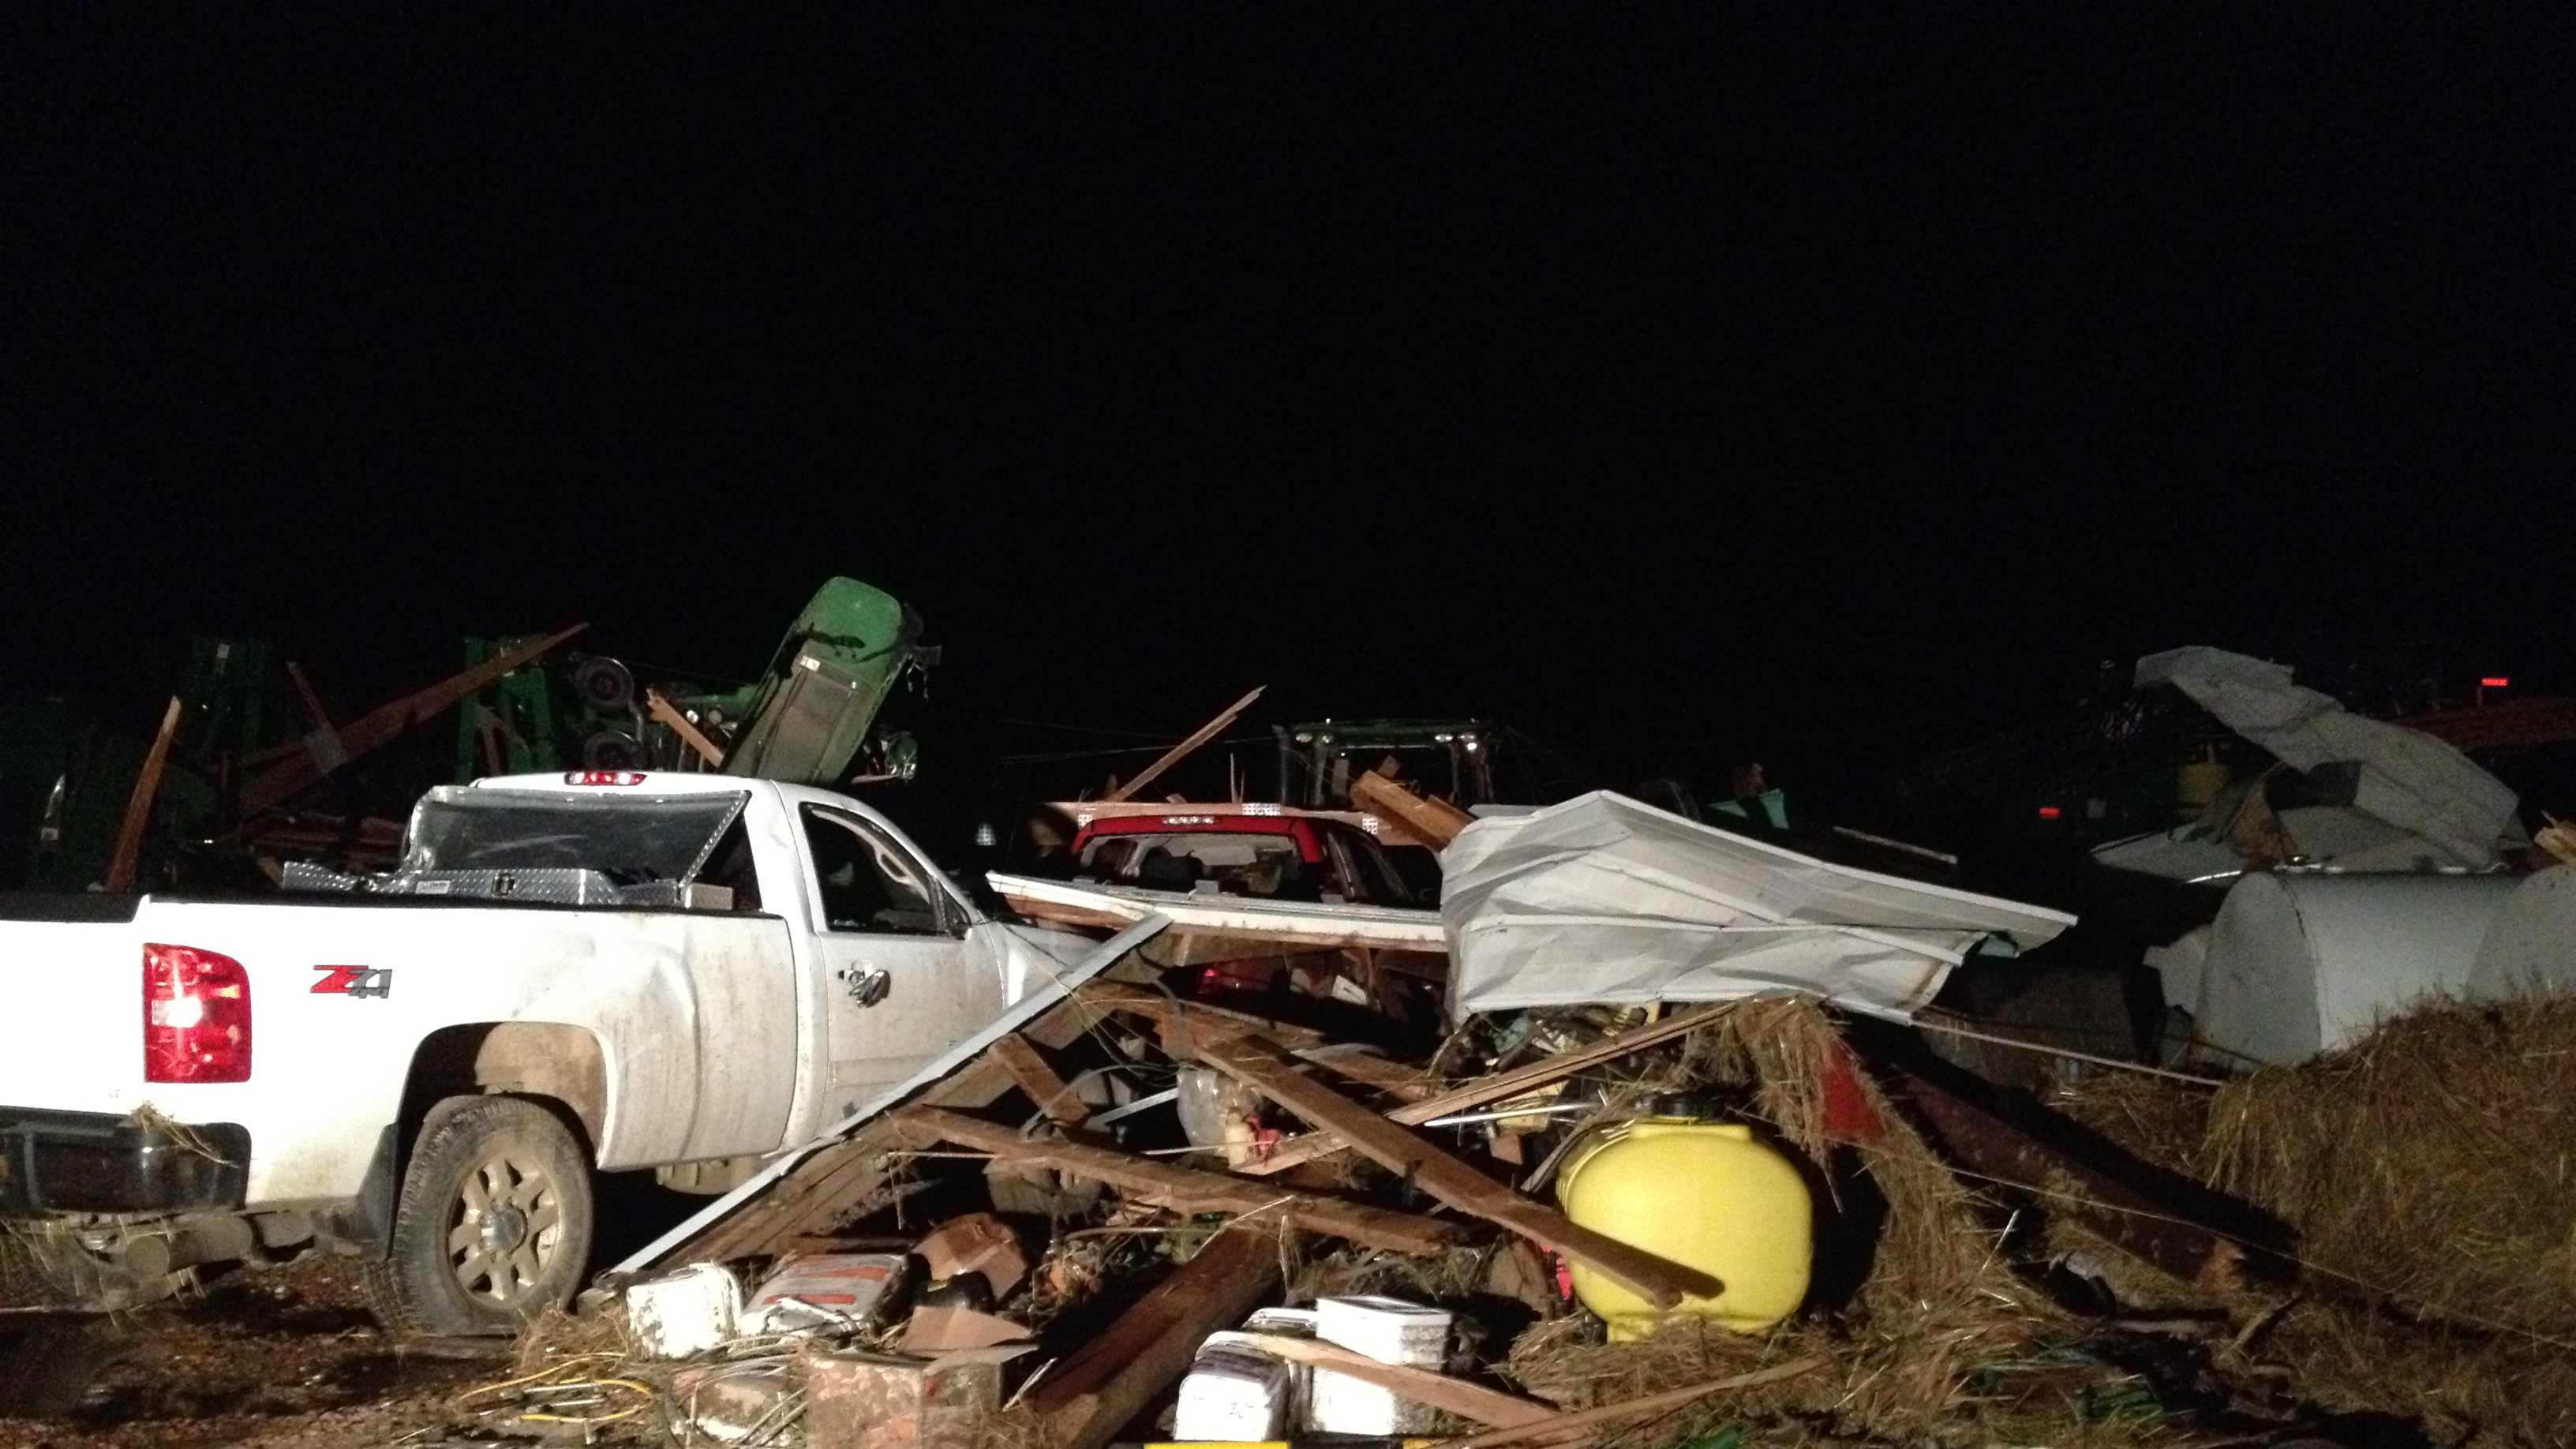 Storms damaged homes near Moville, Iowa. (photo via KETV.com)